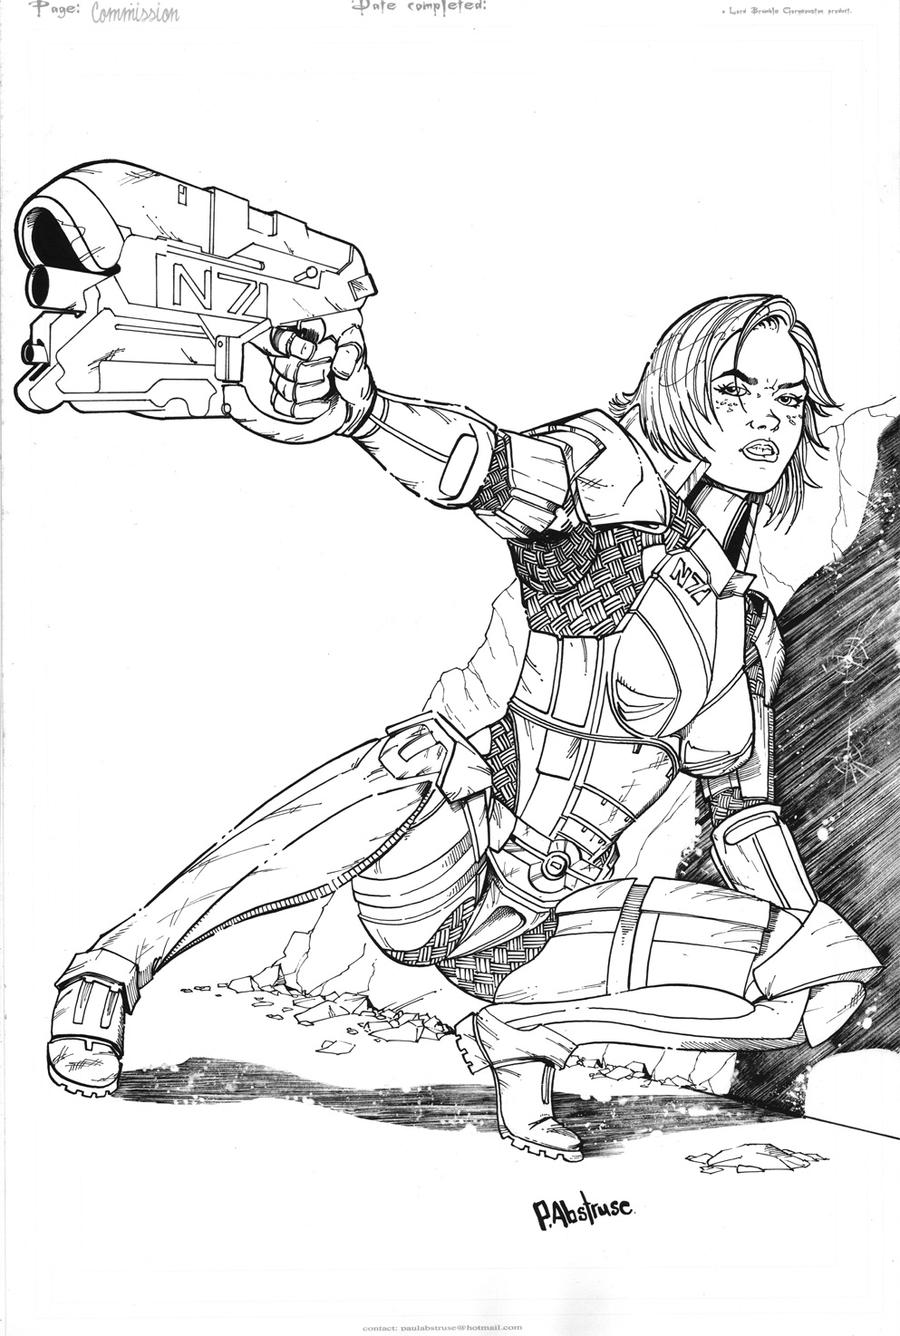 mass effect 3 coloring pages - photo#16